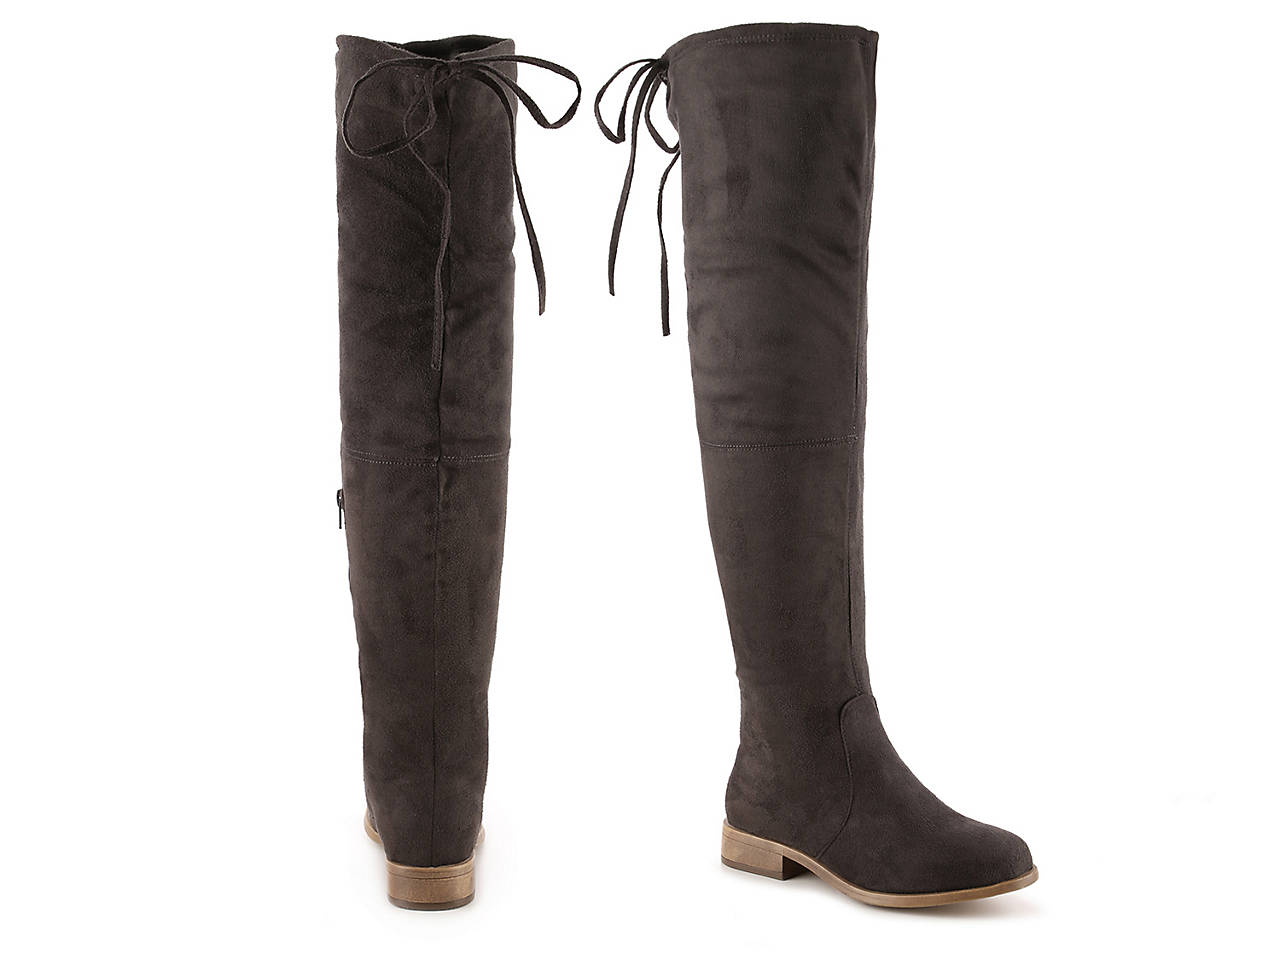 f3549c334c4 Journee Collection Mount Wide Calf Over The Knee Boot Women's Shoes ...